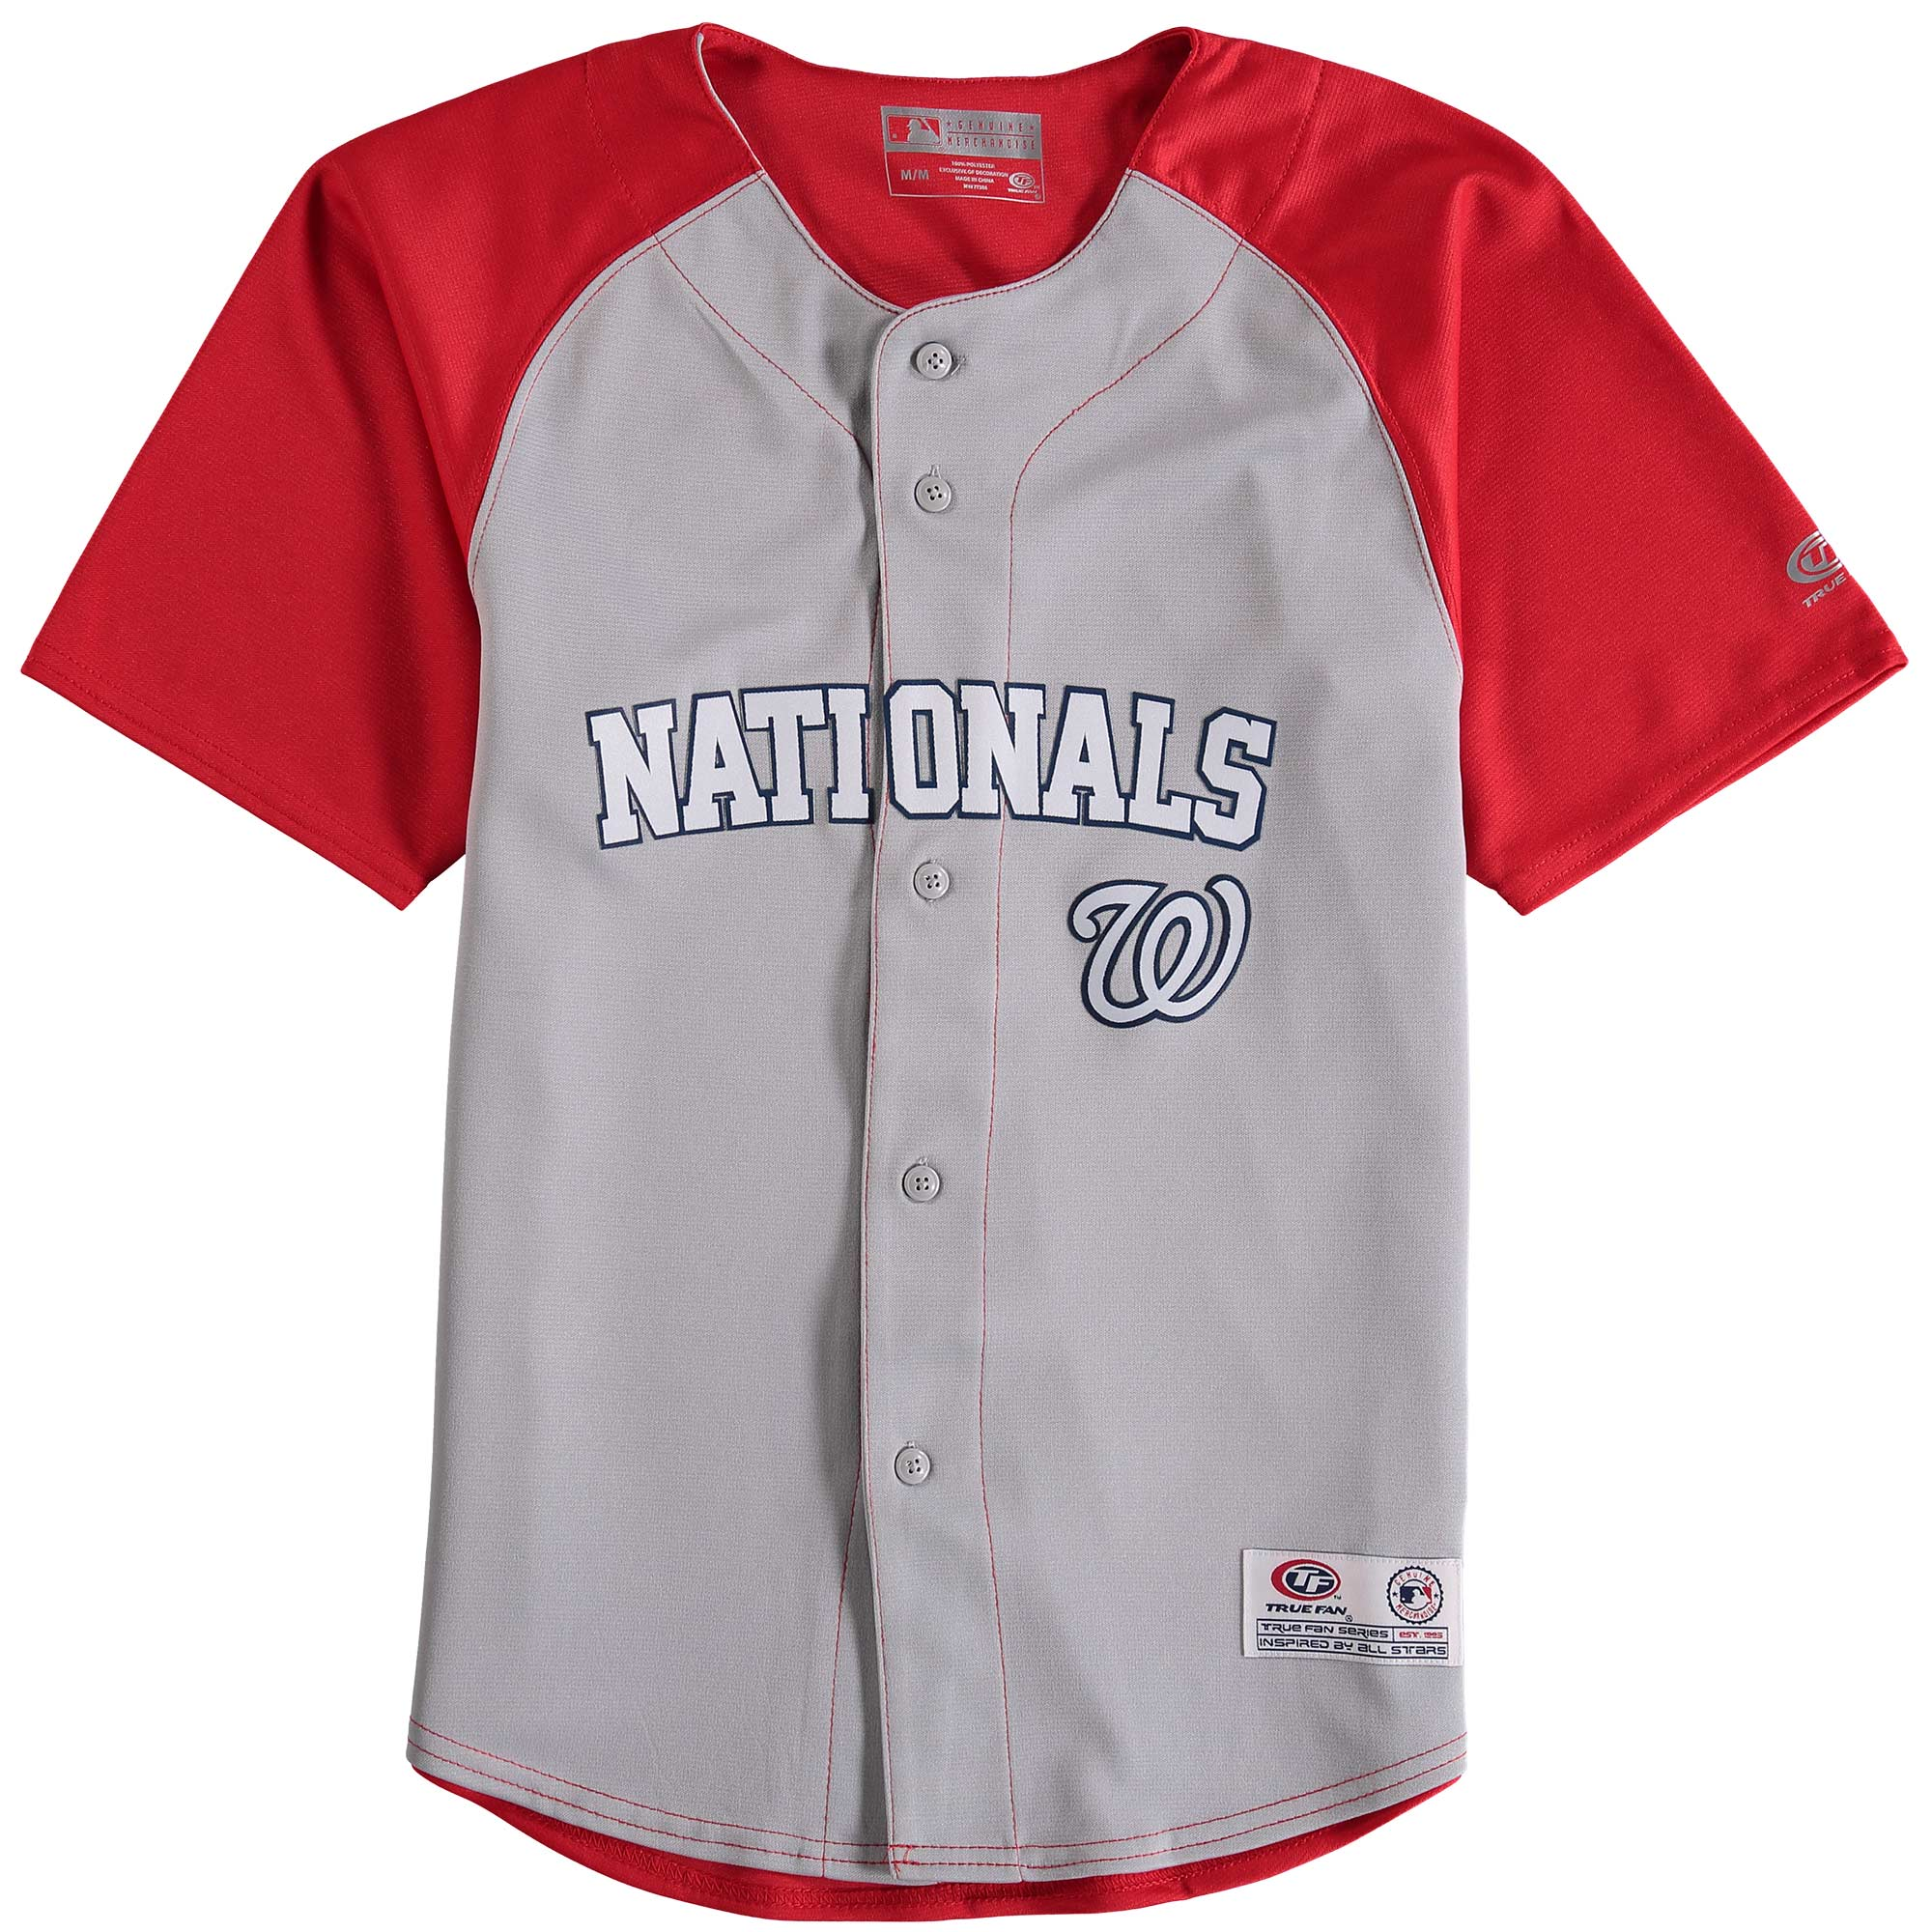 Washington Nationals Stitches Youth Double Play Jersey - Gray/Red